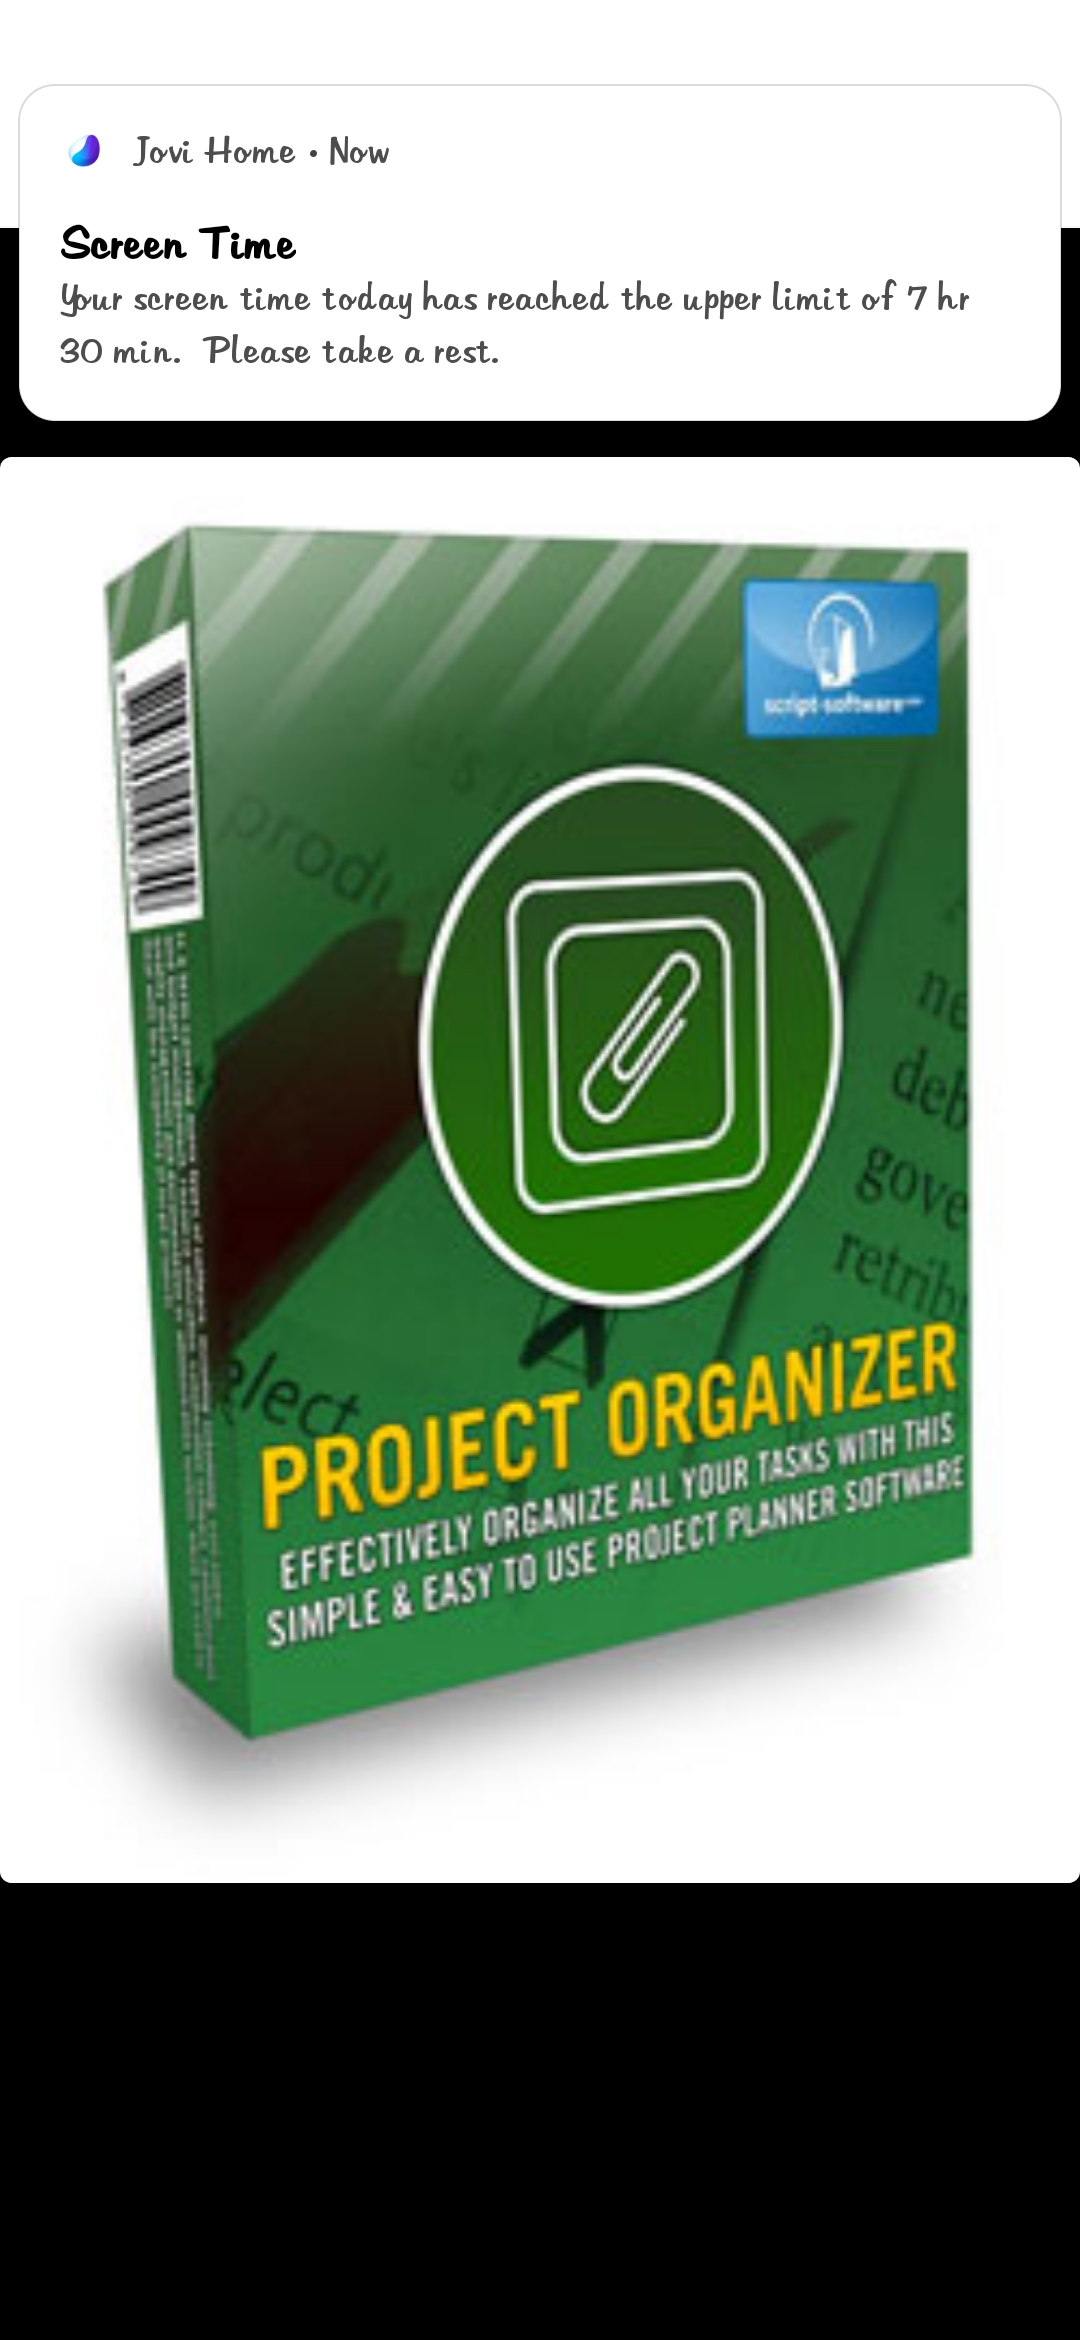 Project organizer service manegement and create